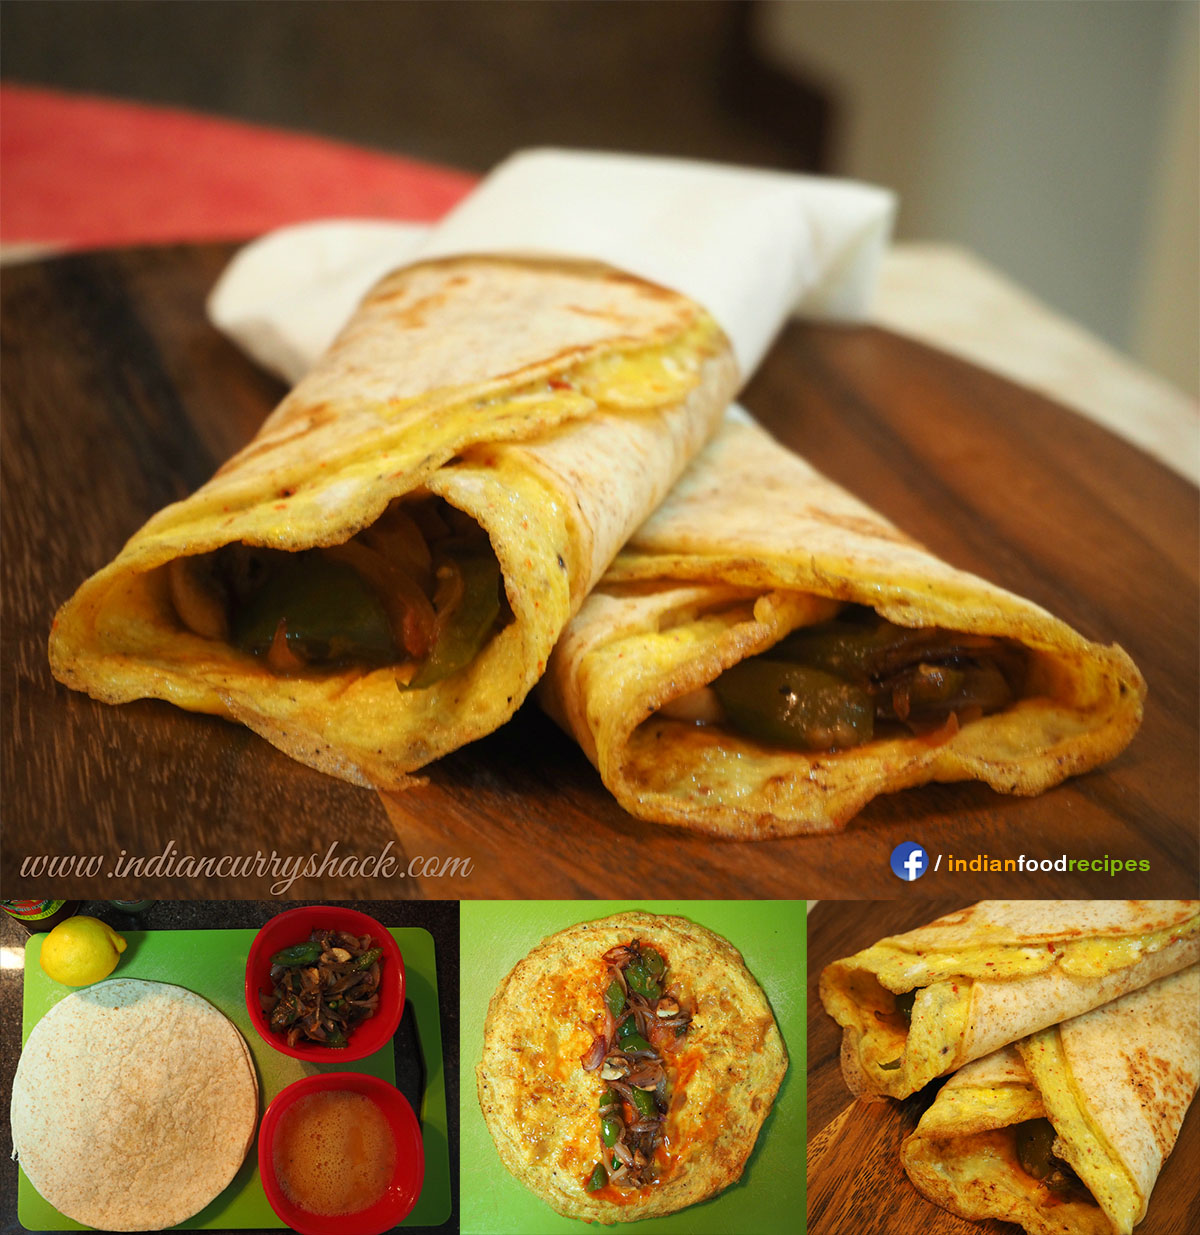 Egg Roll recipe step by step